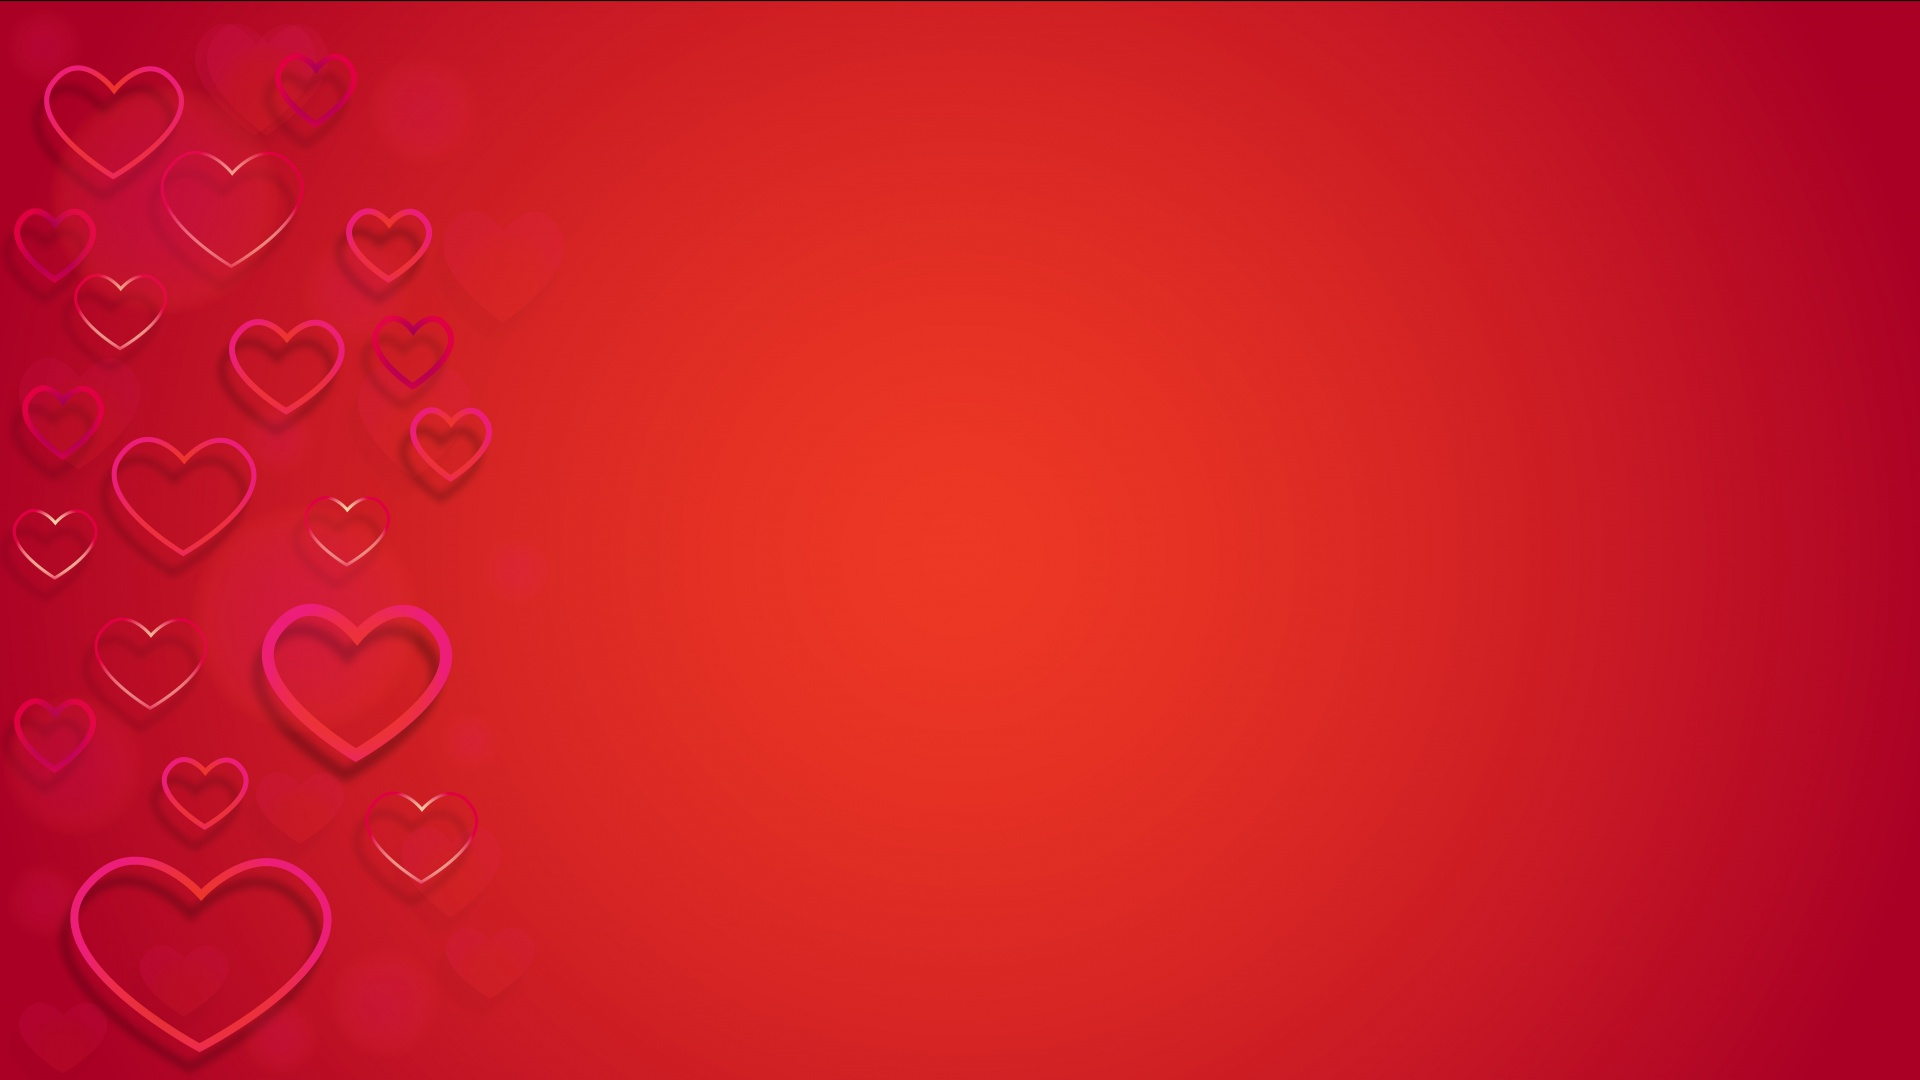 Download Free Photo Of Hearts Love Wallpaper Background Love Heart